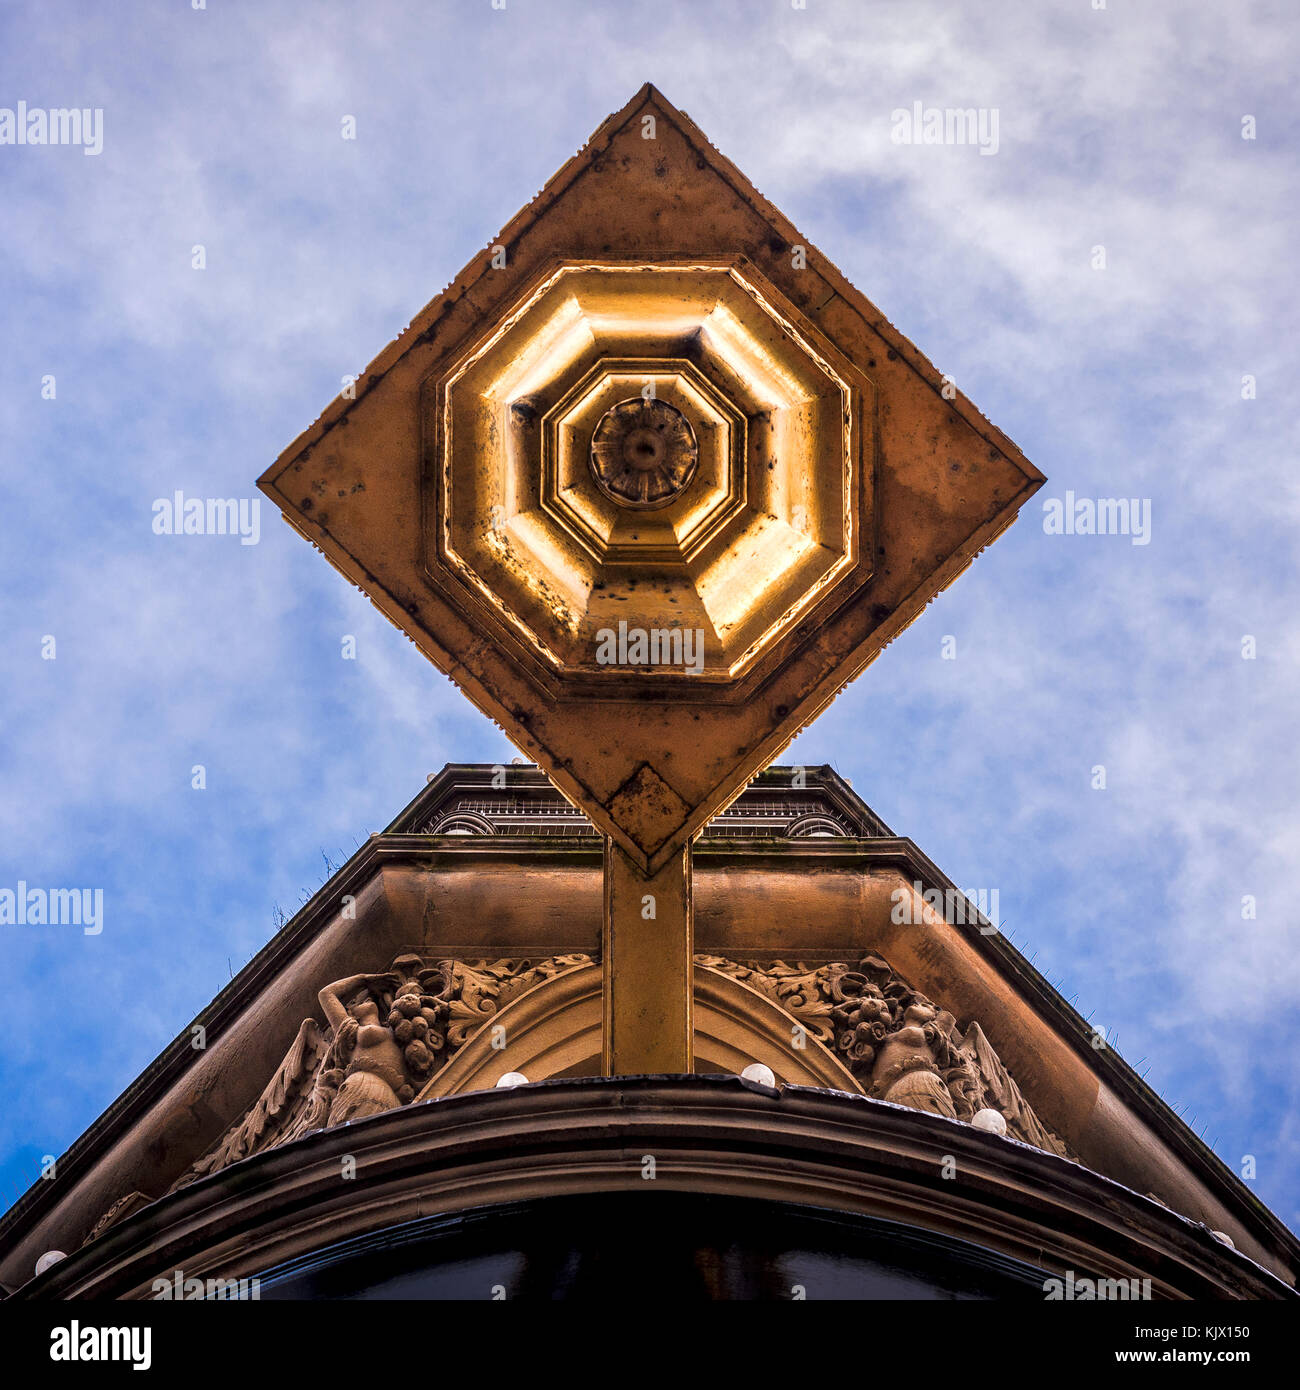 Unusual angle of view - looking up a building - Stock Image